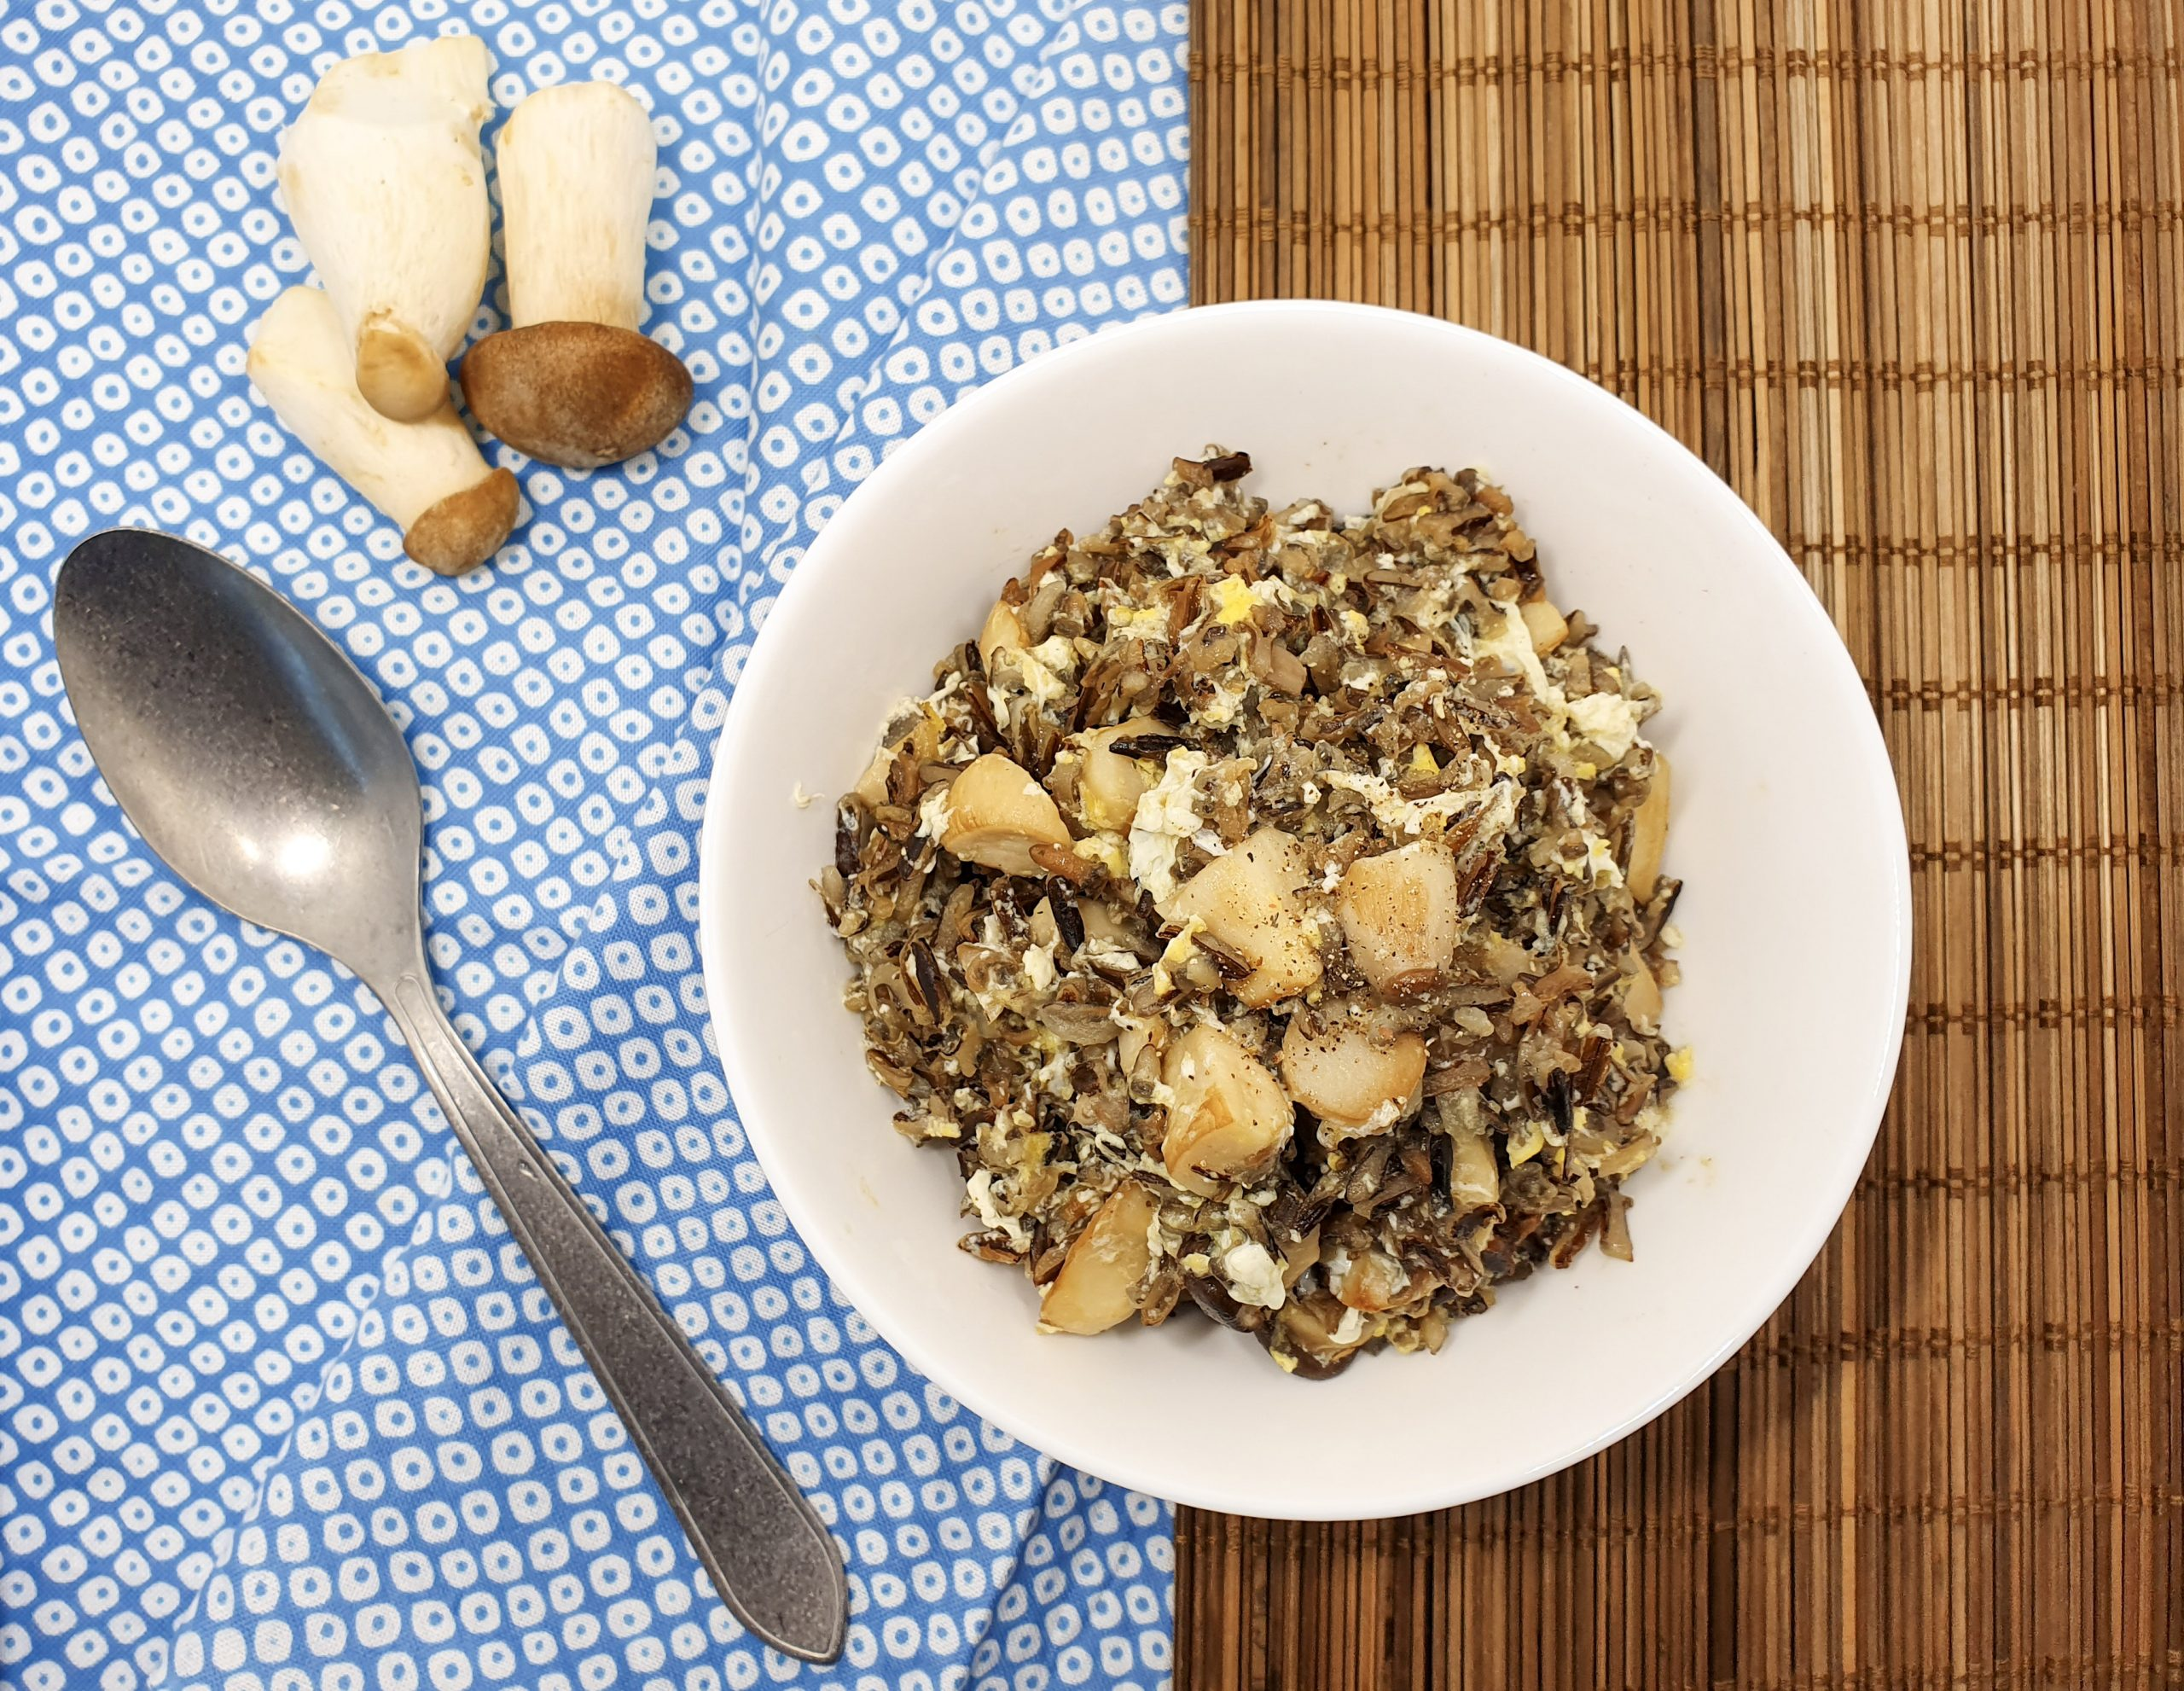 Bowl with mushroom and wild rice with an egg